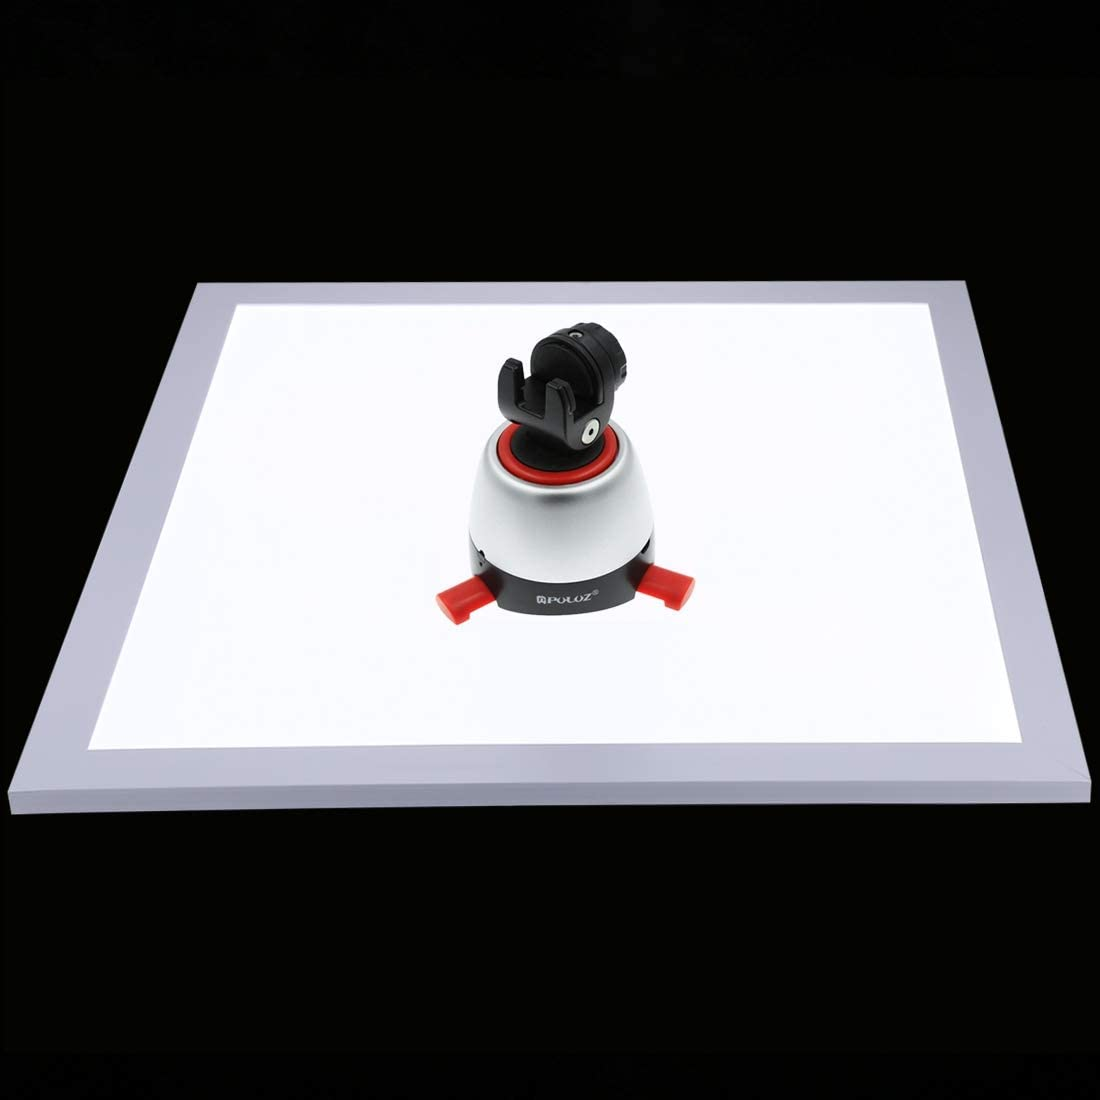 MOBILEACCESSORIES for TL 1200LM LED Photography Shadowless Light Lamp Panel Pad with Switch 34.7cm x 34.7cm Effective Area Photography Lights No Polar Dimming Light Acrylic Material